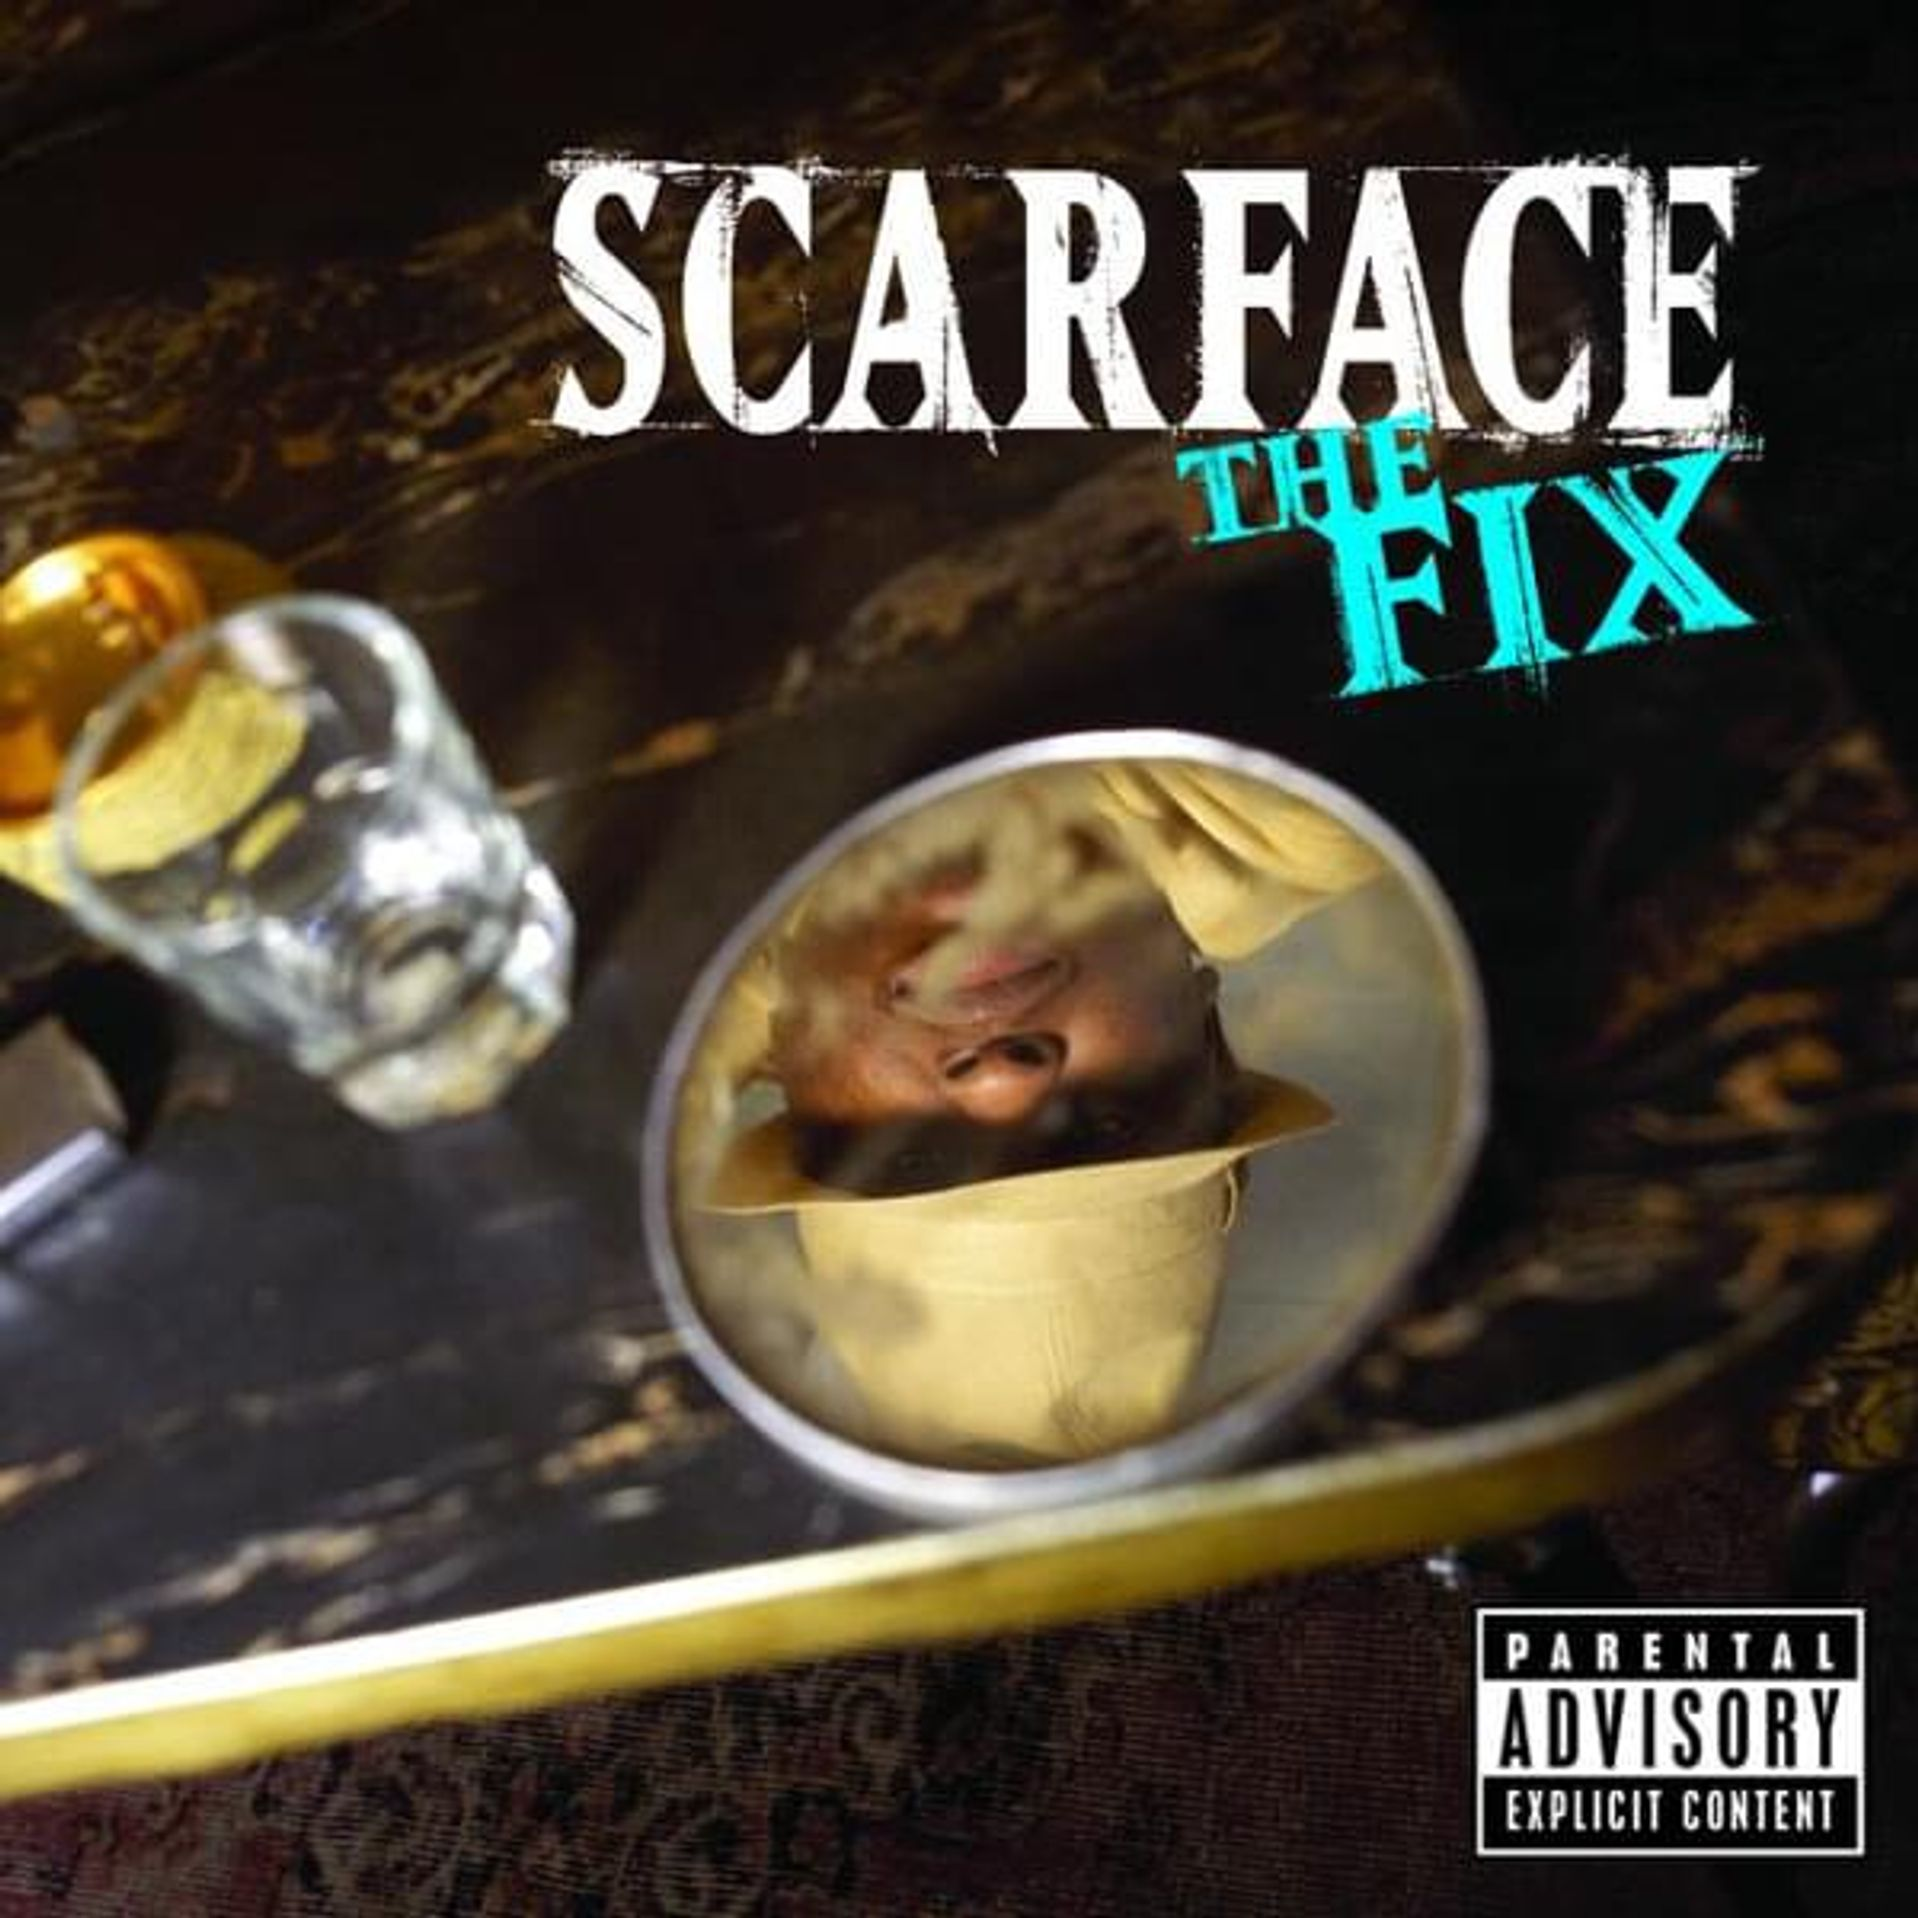 Album Title: The Fix by: Scarface